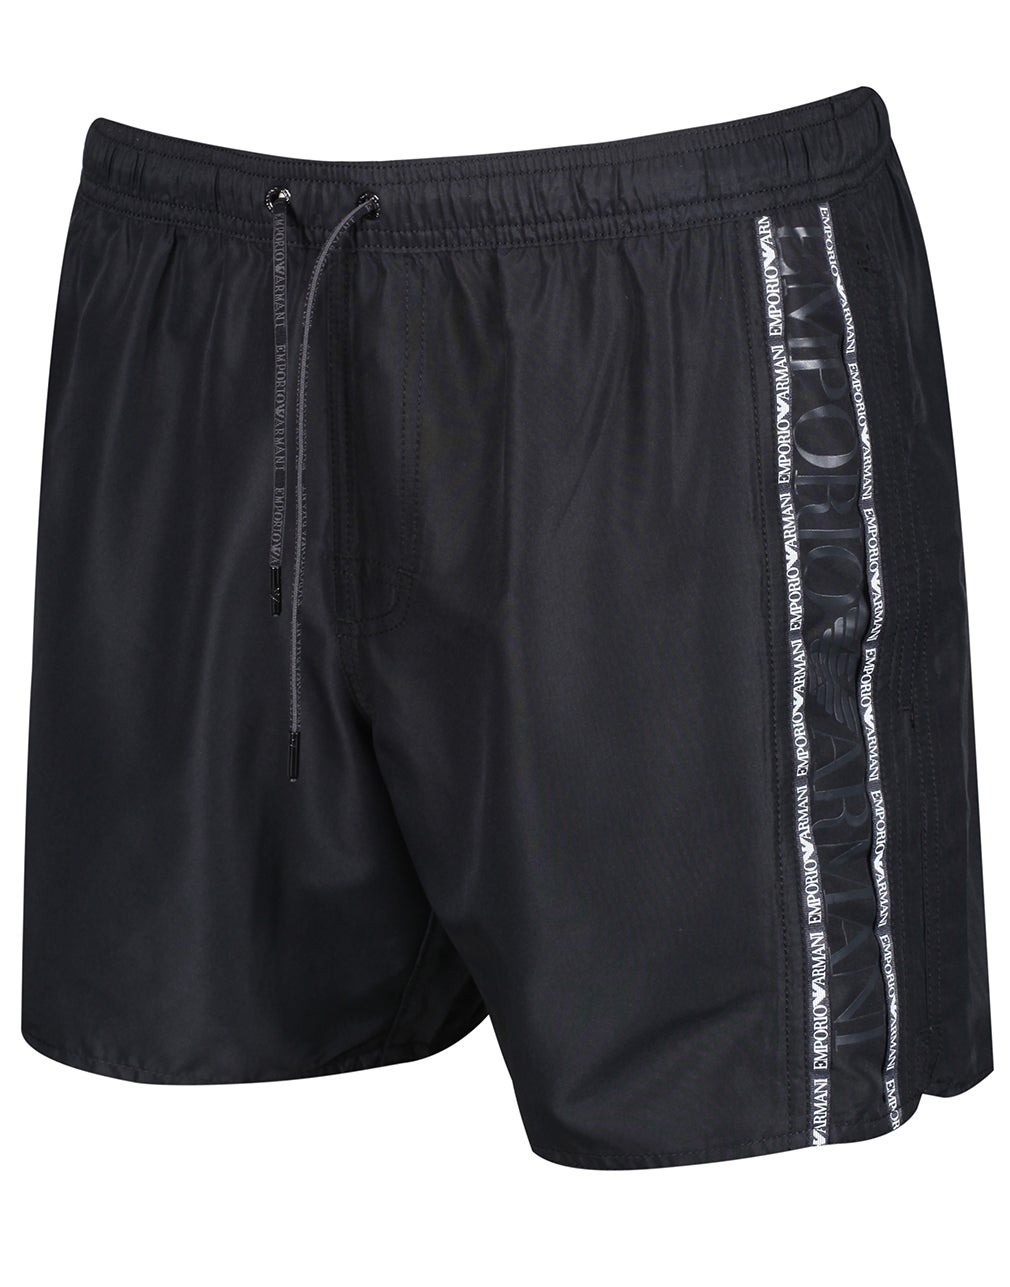 b05811ae4bd0a Emporio Armani Woven Colour Block Swim Shorts - Nero | Country Attire